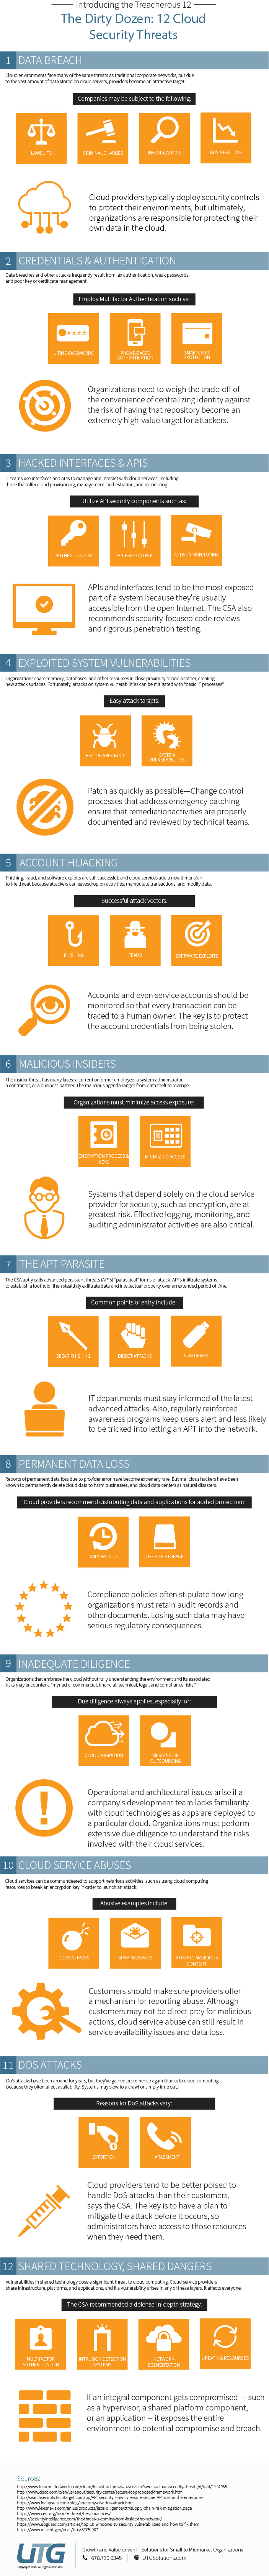 12 Cloud Security Threats Infographic—The Dirty Dozen